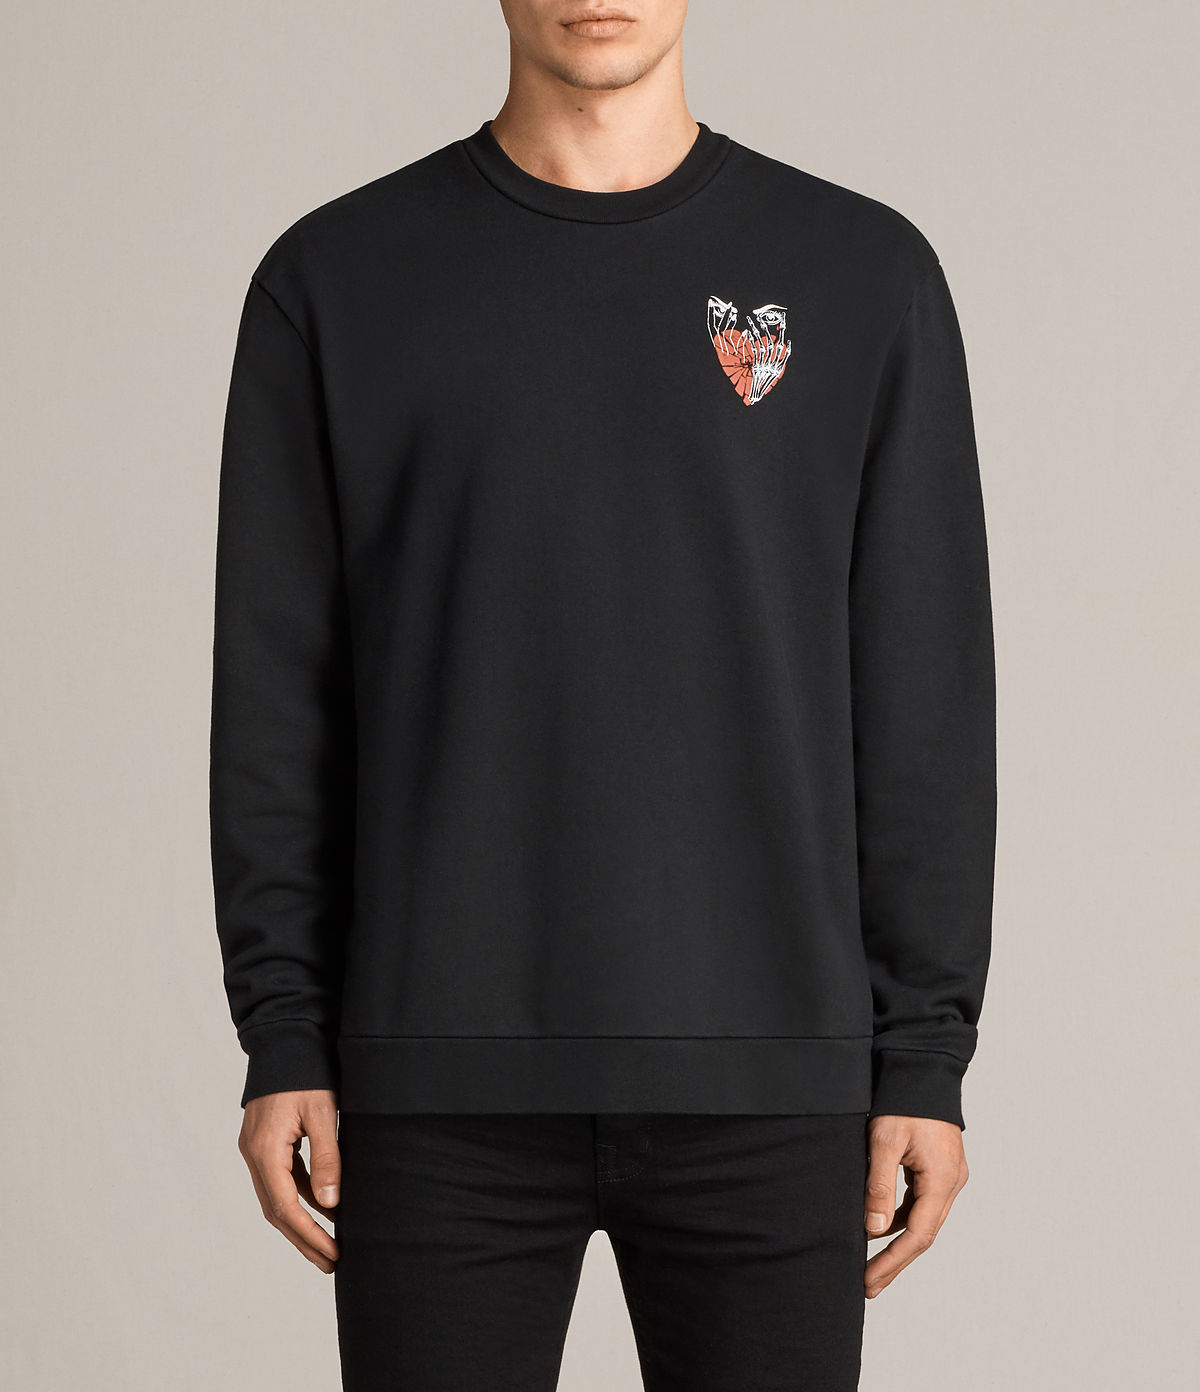 worship-switch-crew-sweatshirt